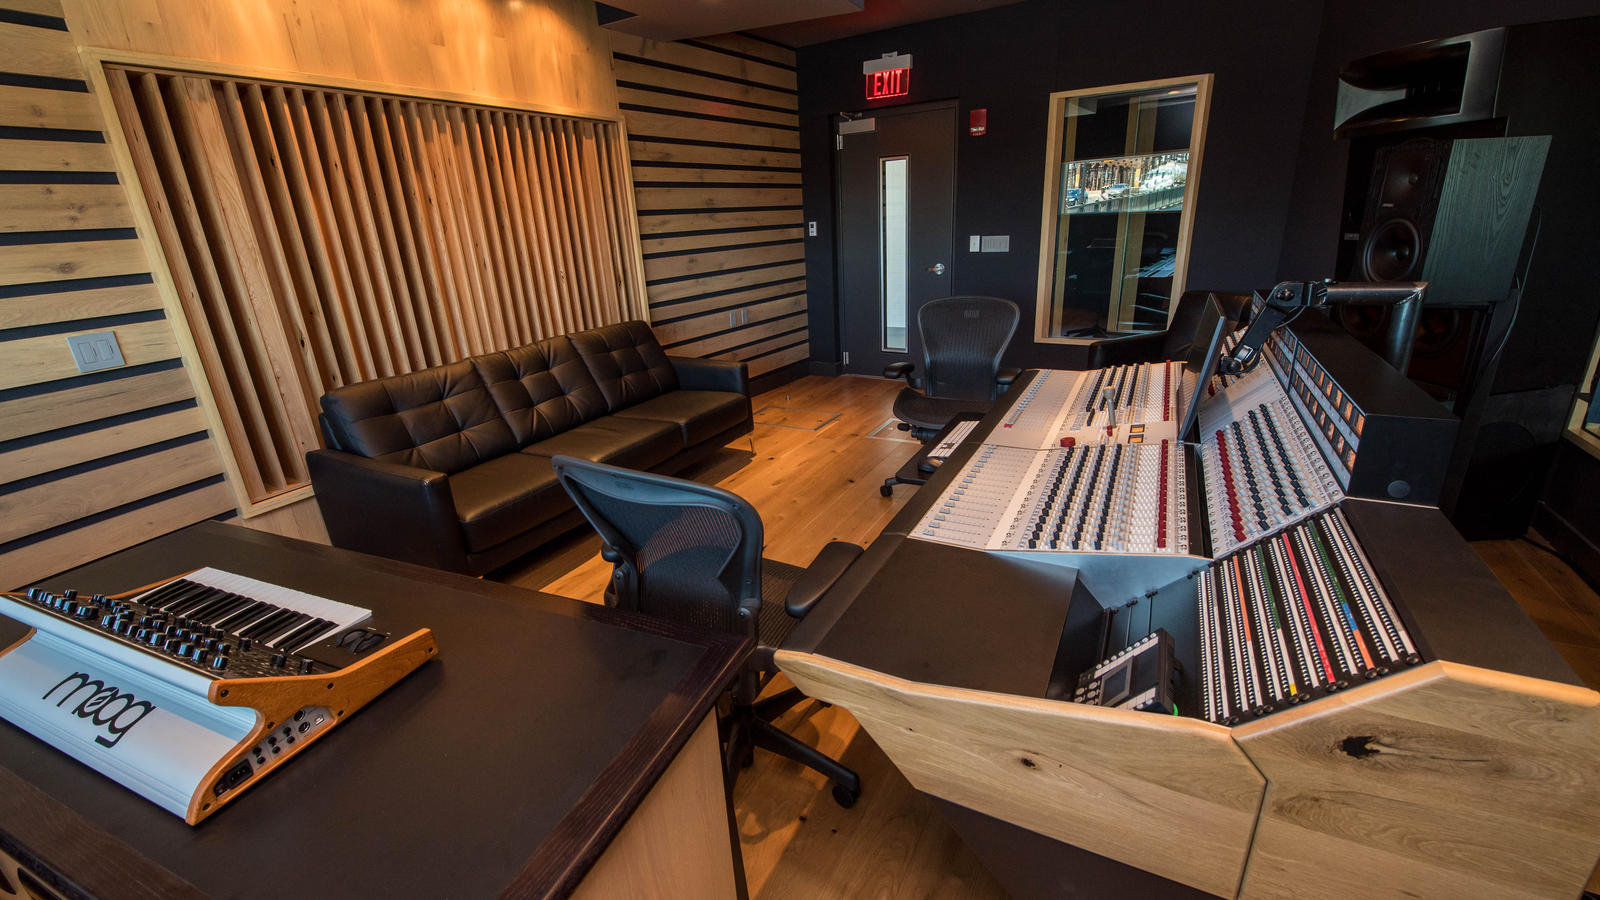 Converse Rubber Tracks Amplifies With New Recording Studio